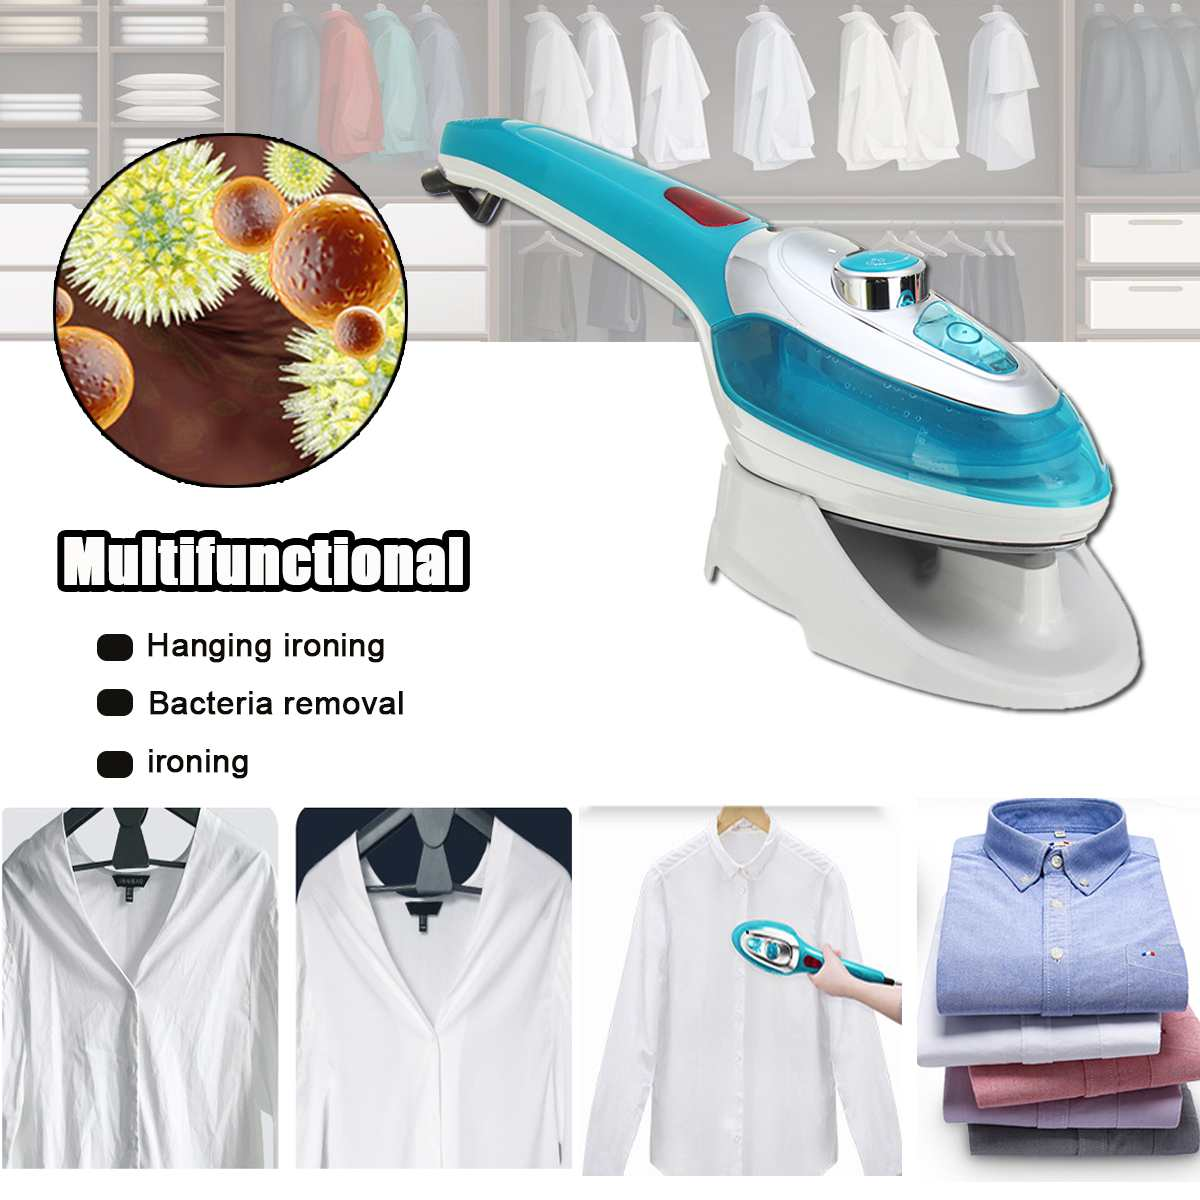 220V 1000W Portable Handheld Garment Steamers Mini Household Appliances Electric Steam Irons Brushes For Underwear Steamer Iron